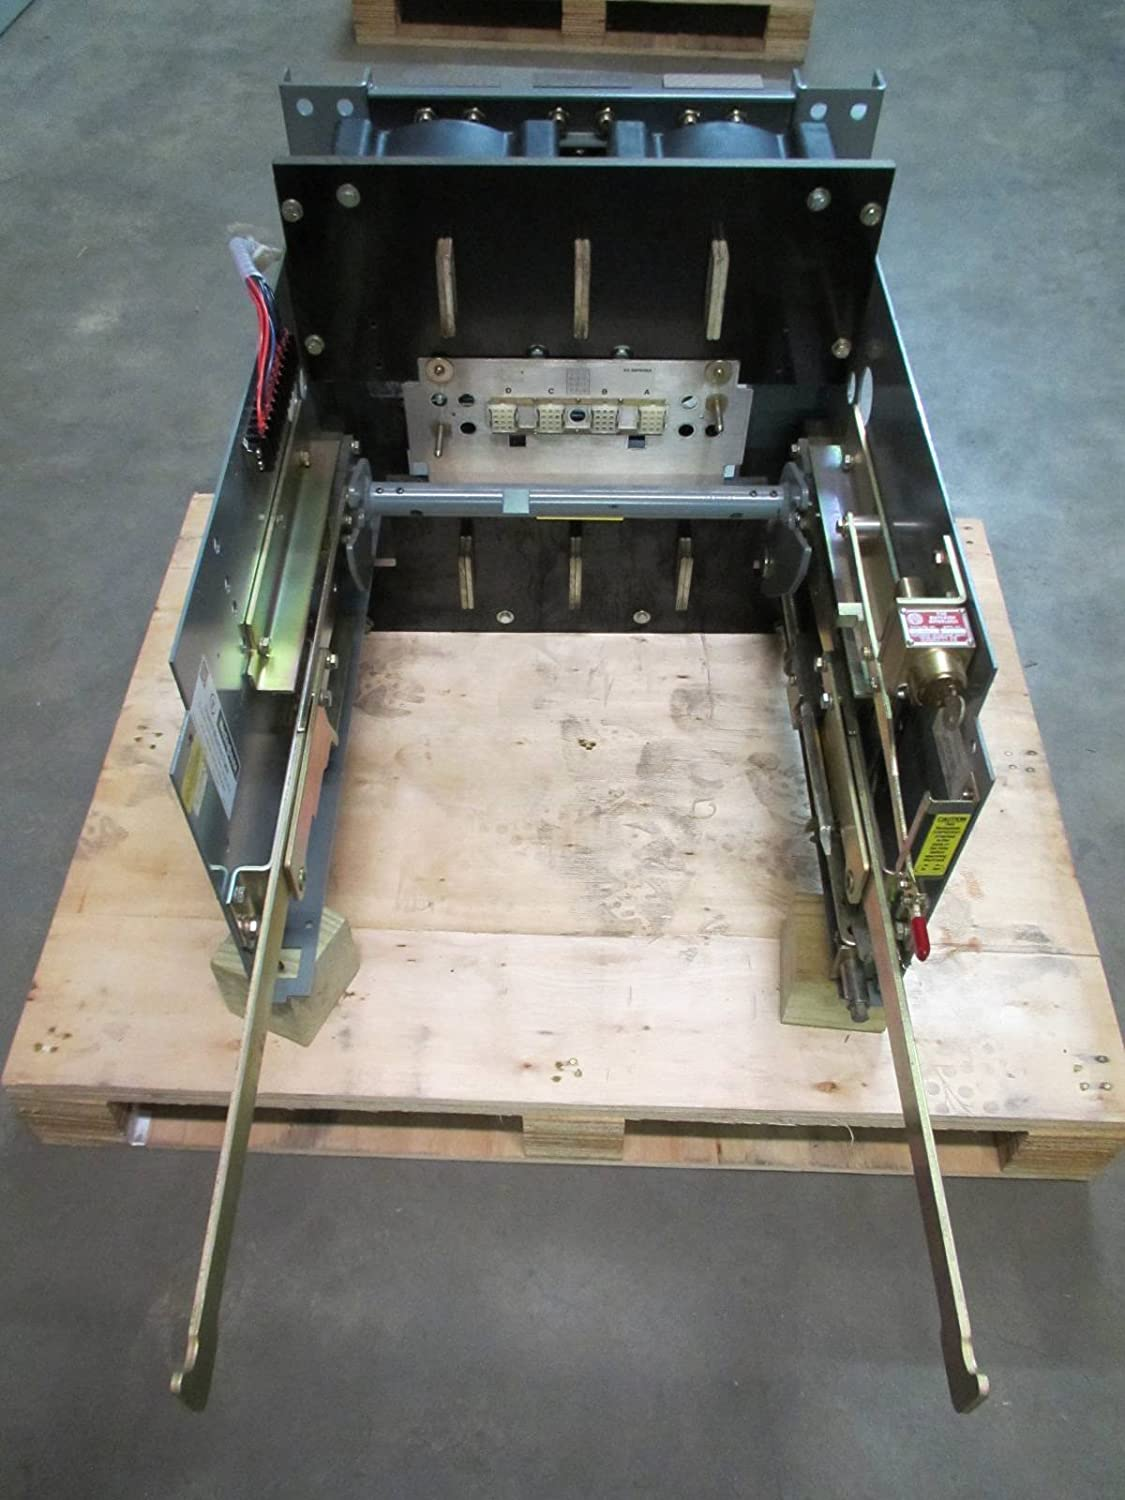 Westinghouse Spb 100 65 1600a Drawout Mounting Frame 16spbd0s Square D Qo120gficp 20amp 1pole Gfci Circuit Breaker 16spbdos Industrial Scientific